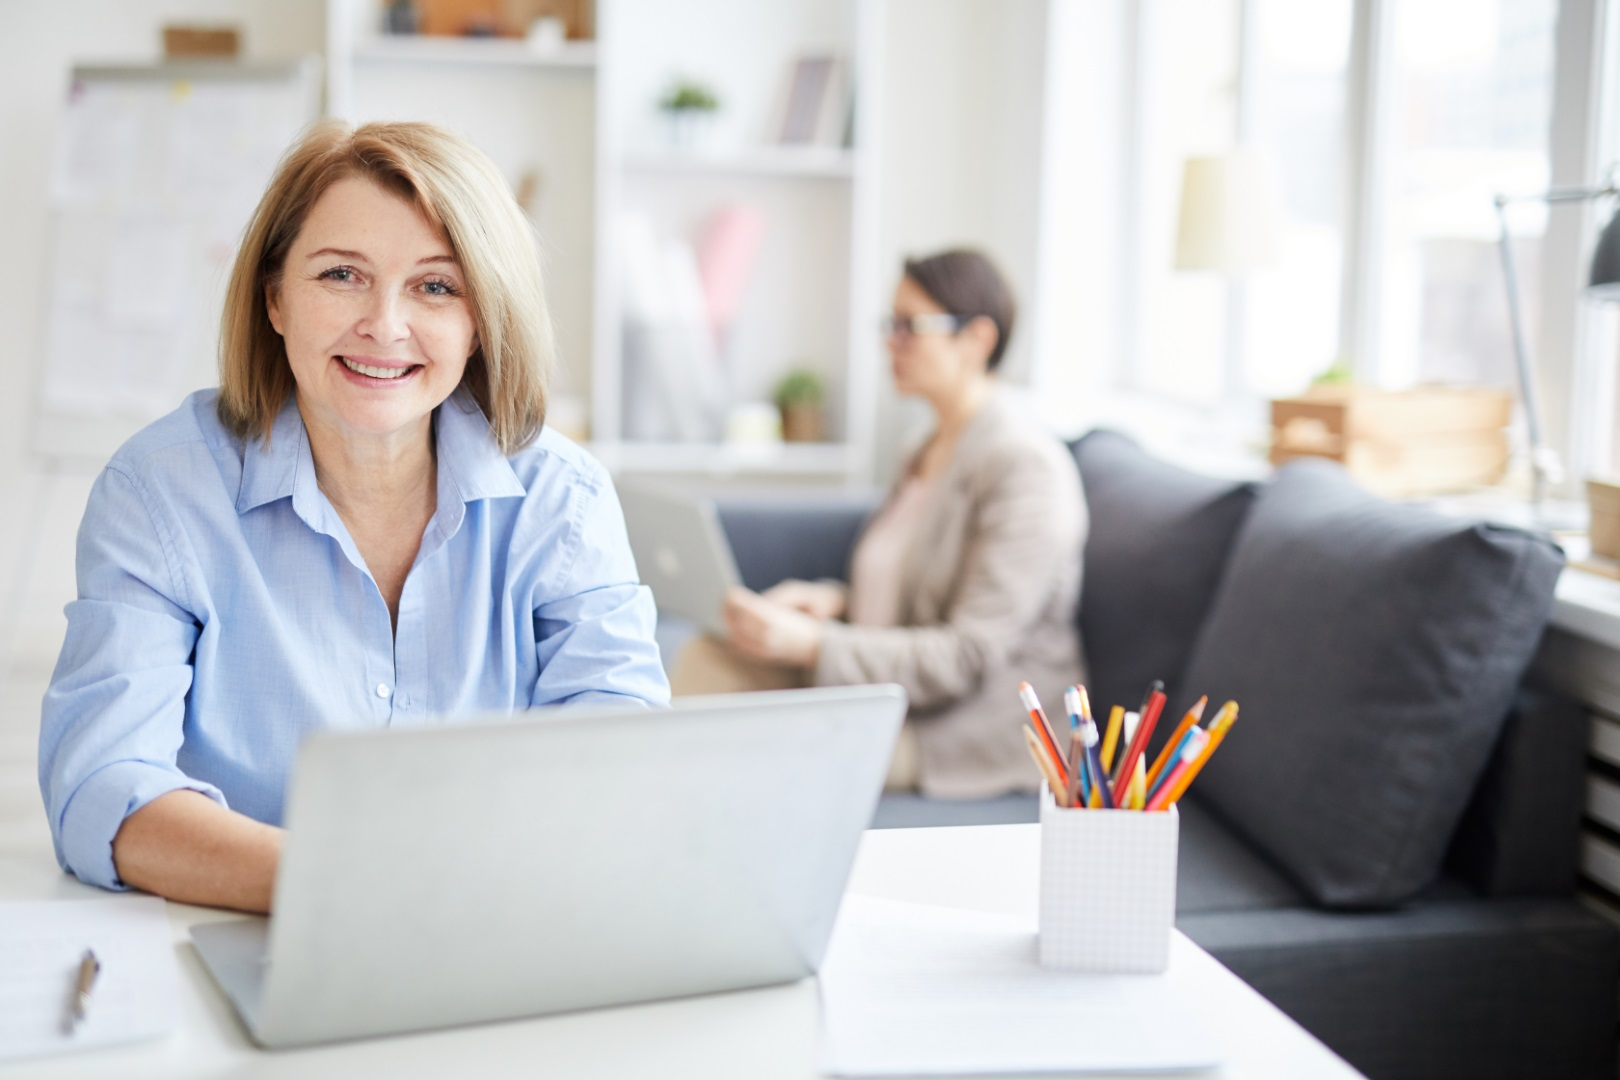 Portrait of successful businesswoman looking at camera and smiling while working in modern office, copy space